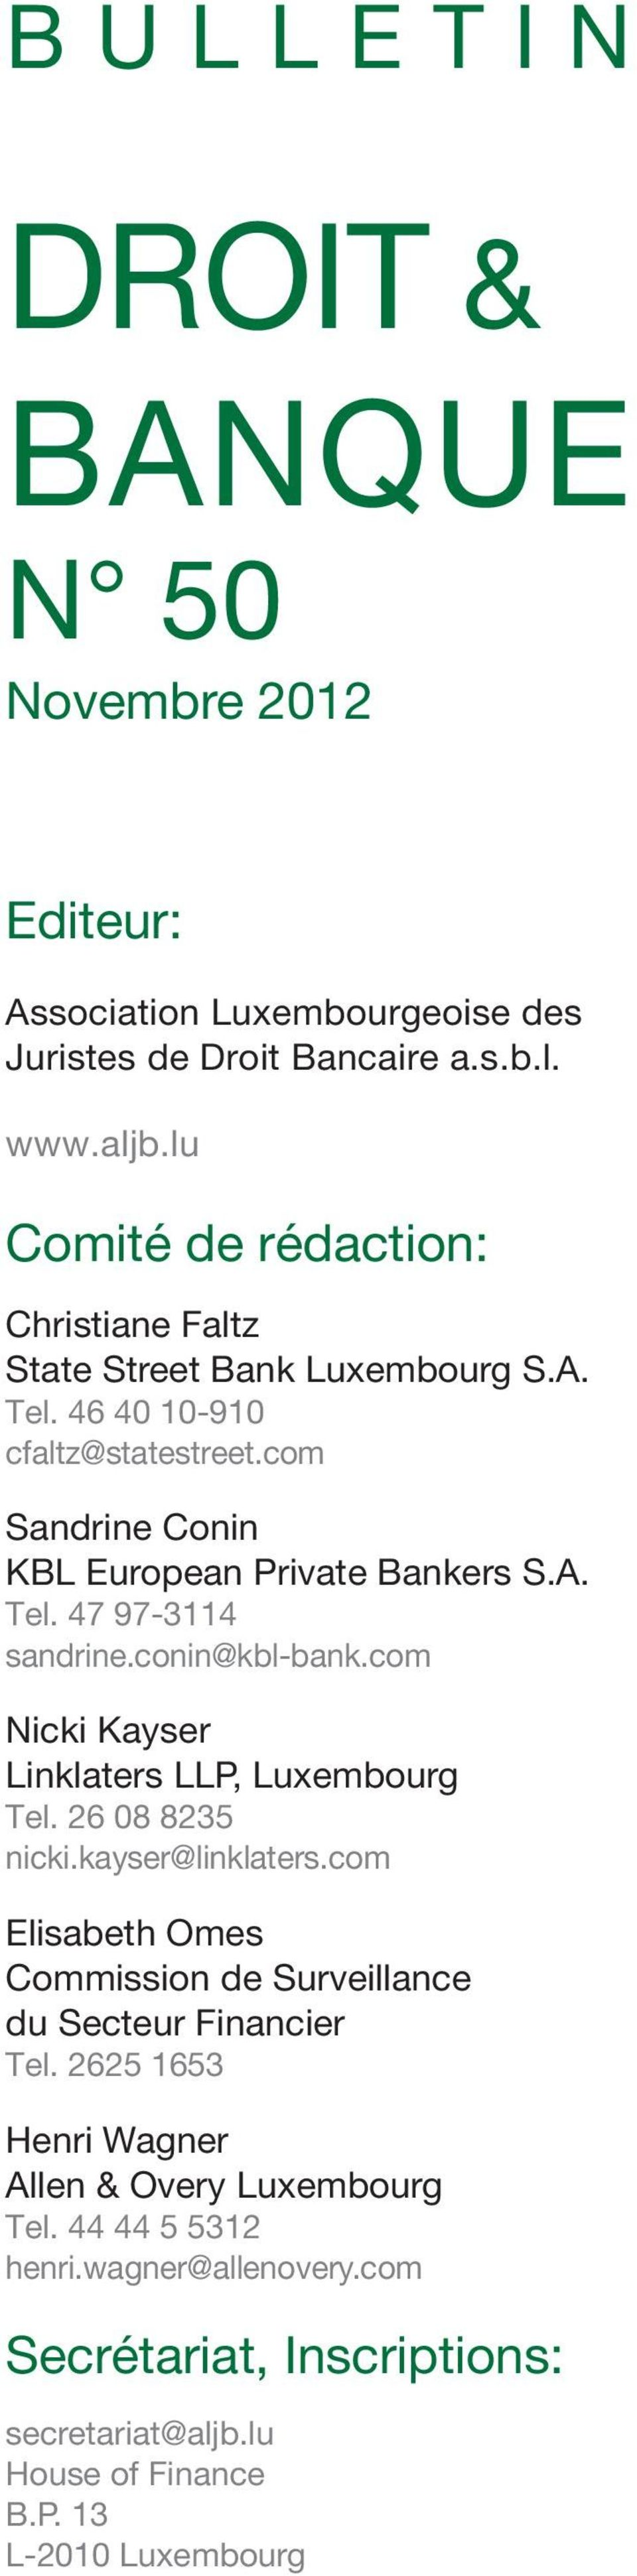 conin@kbl-bank.com Nicki Kayser Linklaters LLP, Luxembourg Tel. 26 08 8235 nicki.kayser@linklaters.